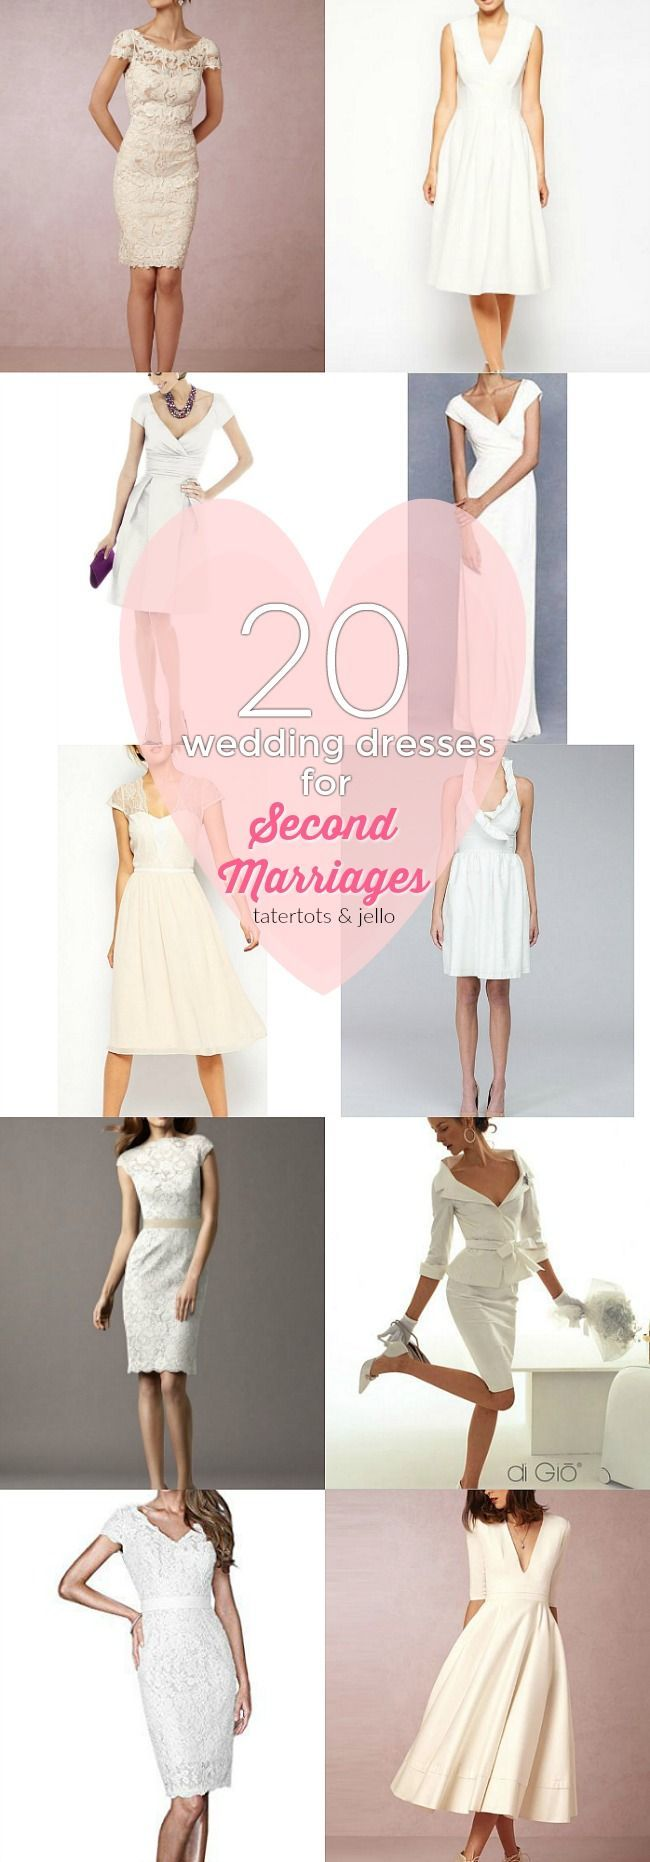 20 Wedding Dresses For A Second Wedding Courthouse Wedding Source By Dlpalestrini Cour In 2020 Courthouse Wedding Dress 2nd Wedding Dresses Second Wedding Dresses